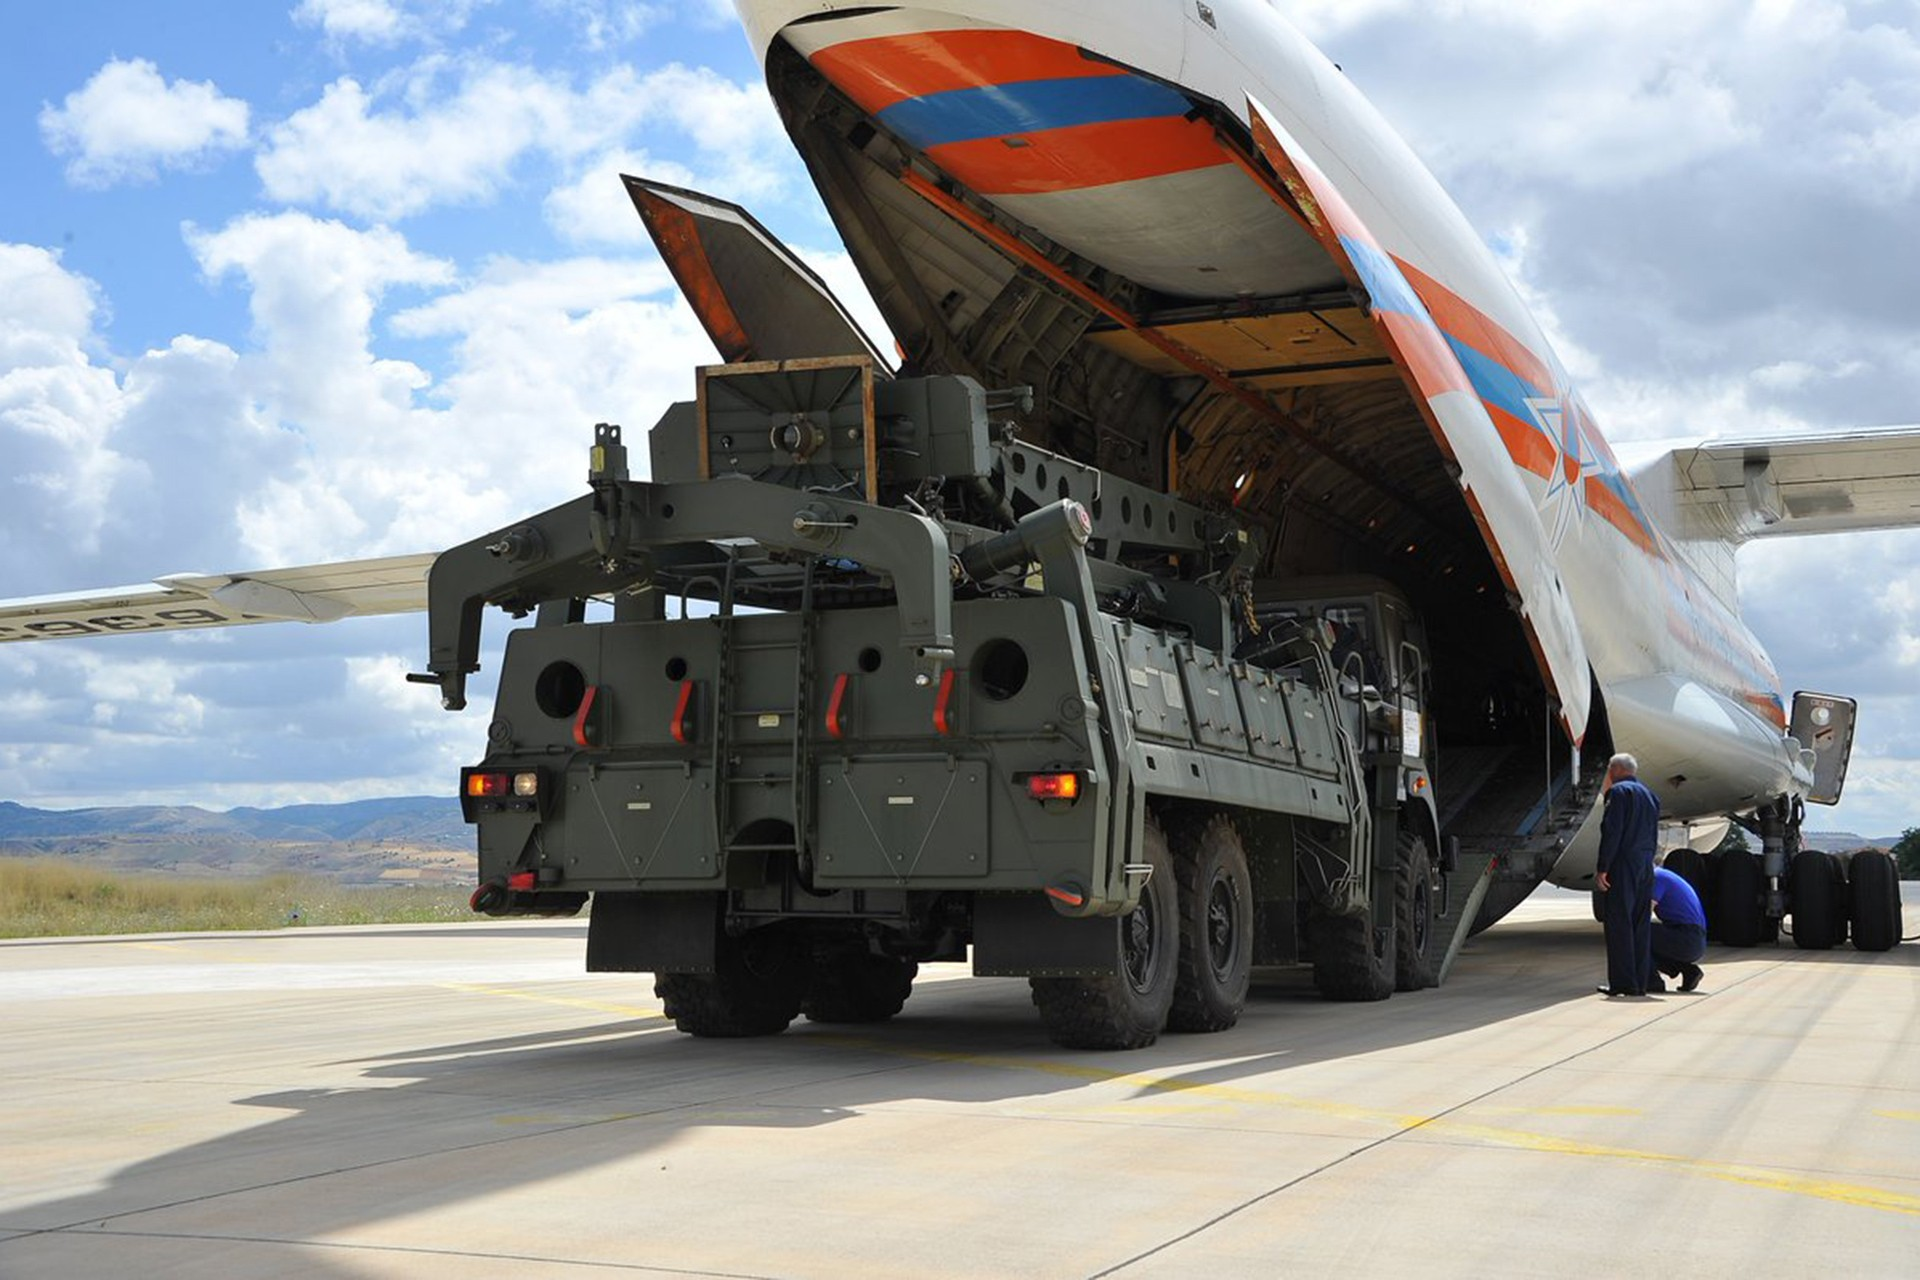 Turkey's S-400 missile purchase from Russia may escalate the Syria and Eastern Mediterranean crisis